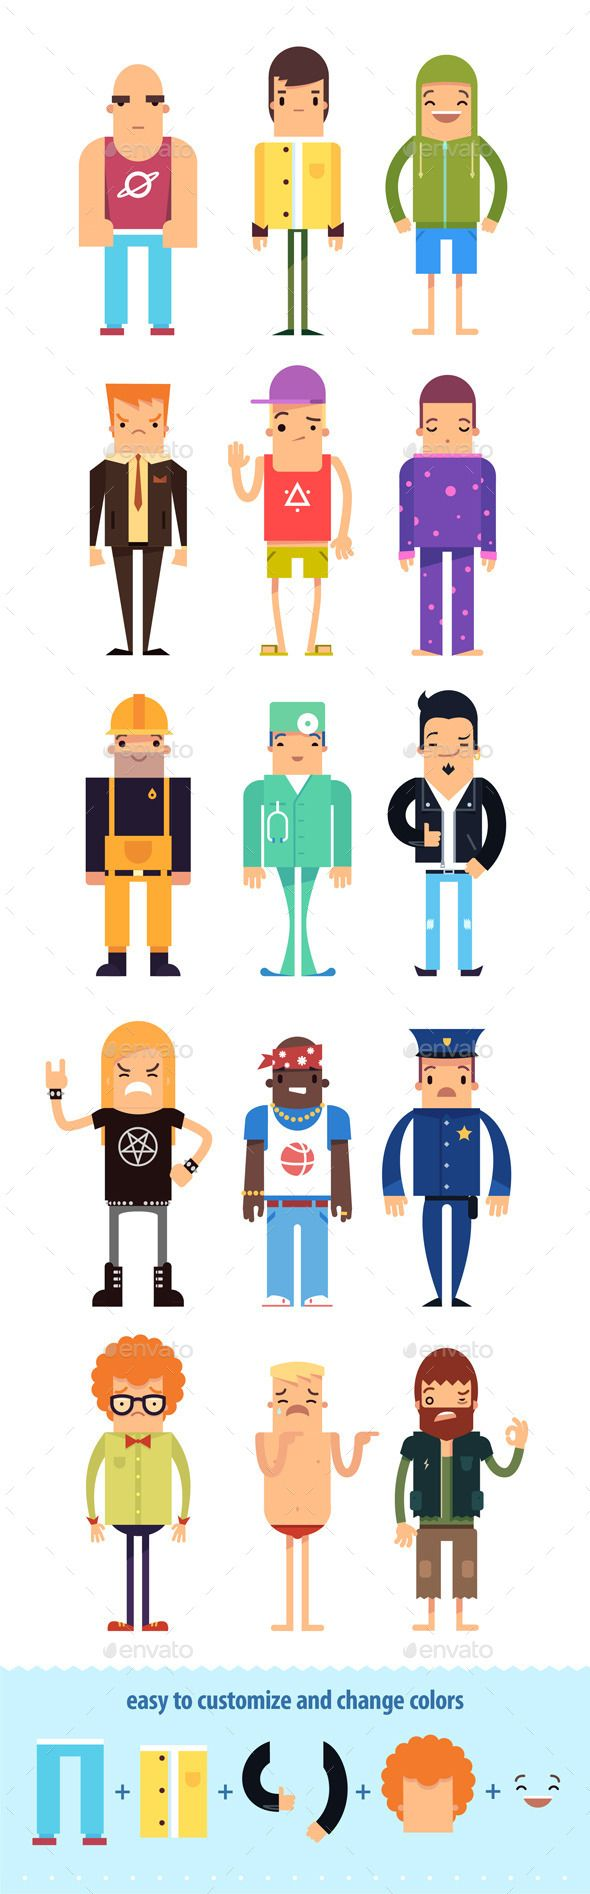 Clipart character creator clipart freeuse stock 17 Best ideas about Character Creation on Pinterest | Character ... clipart freeuse stock